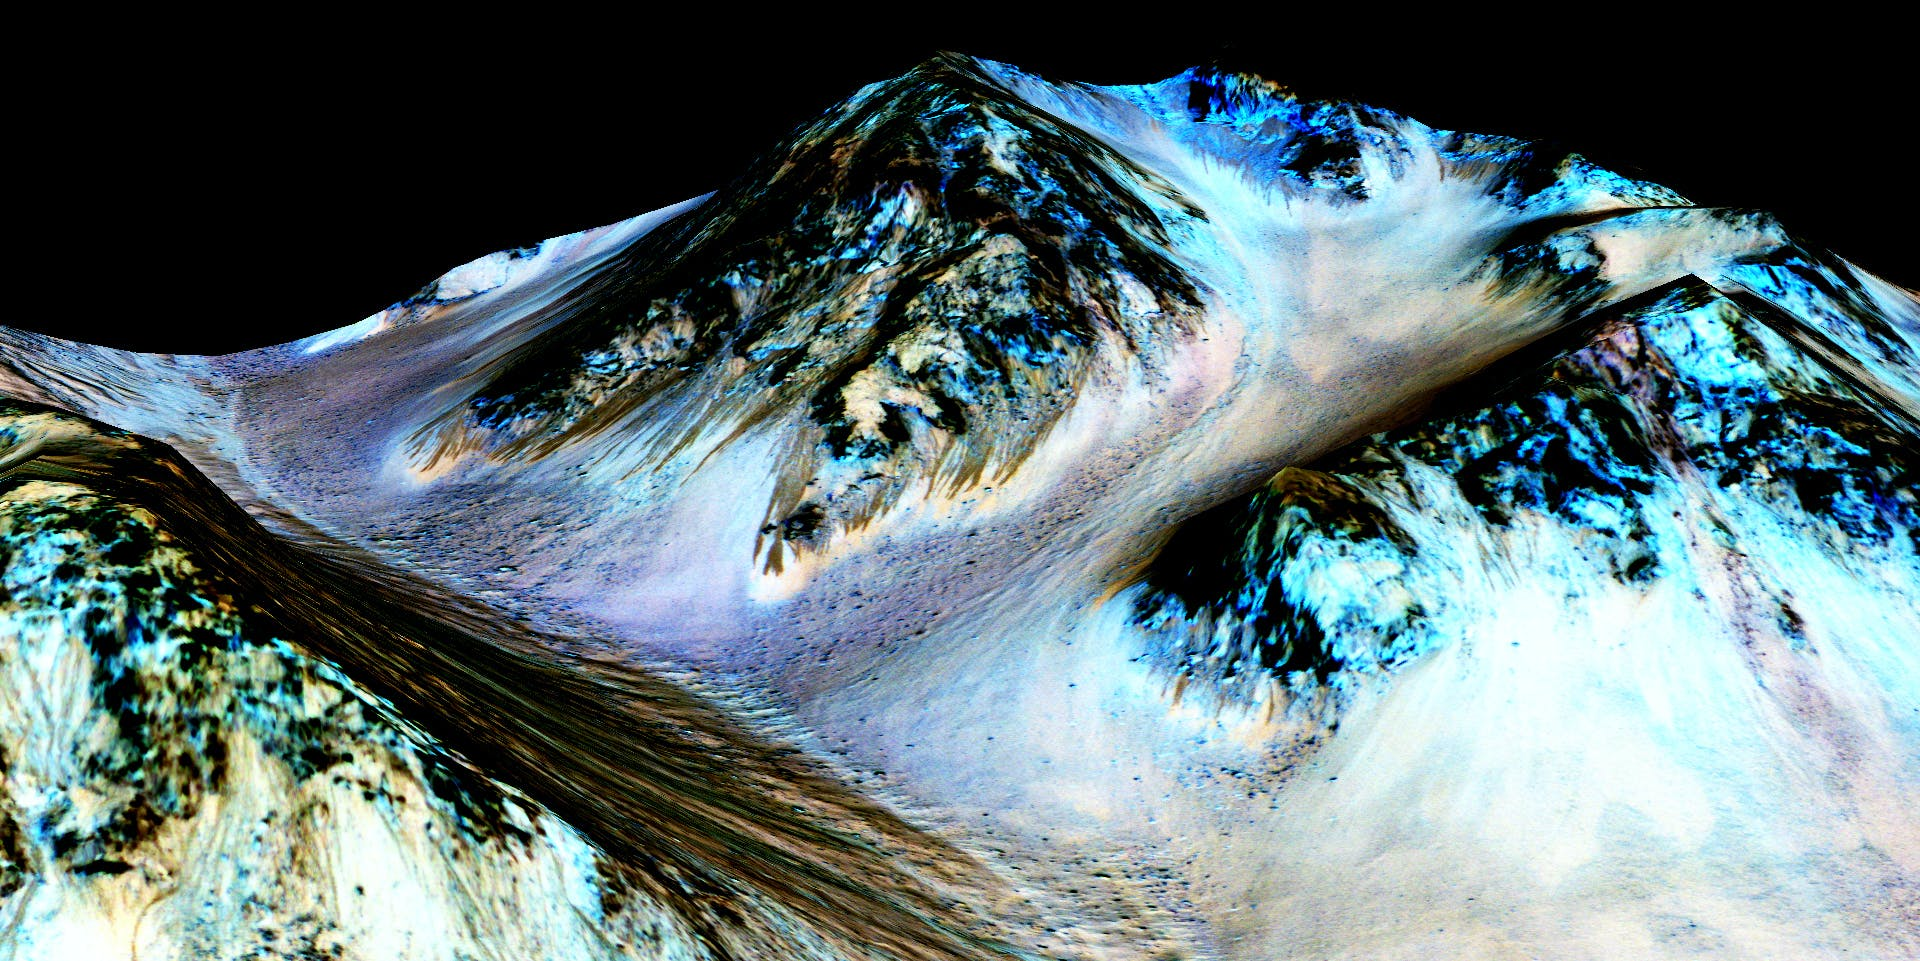 HALE CRATER, MARS - UNSPECIFIED DATE: In this handout provided by NASA's Mars Reconnaissance Orbiter, dark, narrow streaks on the slopes of Hale Crater are inferred to be formed by seasonal flow of water on surface of present-day Mars. These dark features on the slopes are called 'recurring slope lineae' or RSL. Scientists reported on September 28, 2015 using observations with the Compact Reconnaissance Imaging Spectrometer on the same orbiter detected hydrated salts on these slopes at Hale Crater, corroborating the hypothesis that the streaks are formed by briny liquid water. (Photo by NASA/JPL-Caltech/Univ. of Arizona via Getty Images)